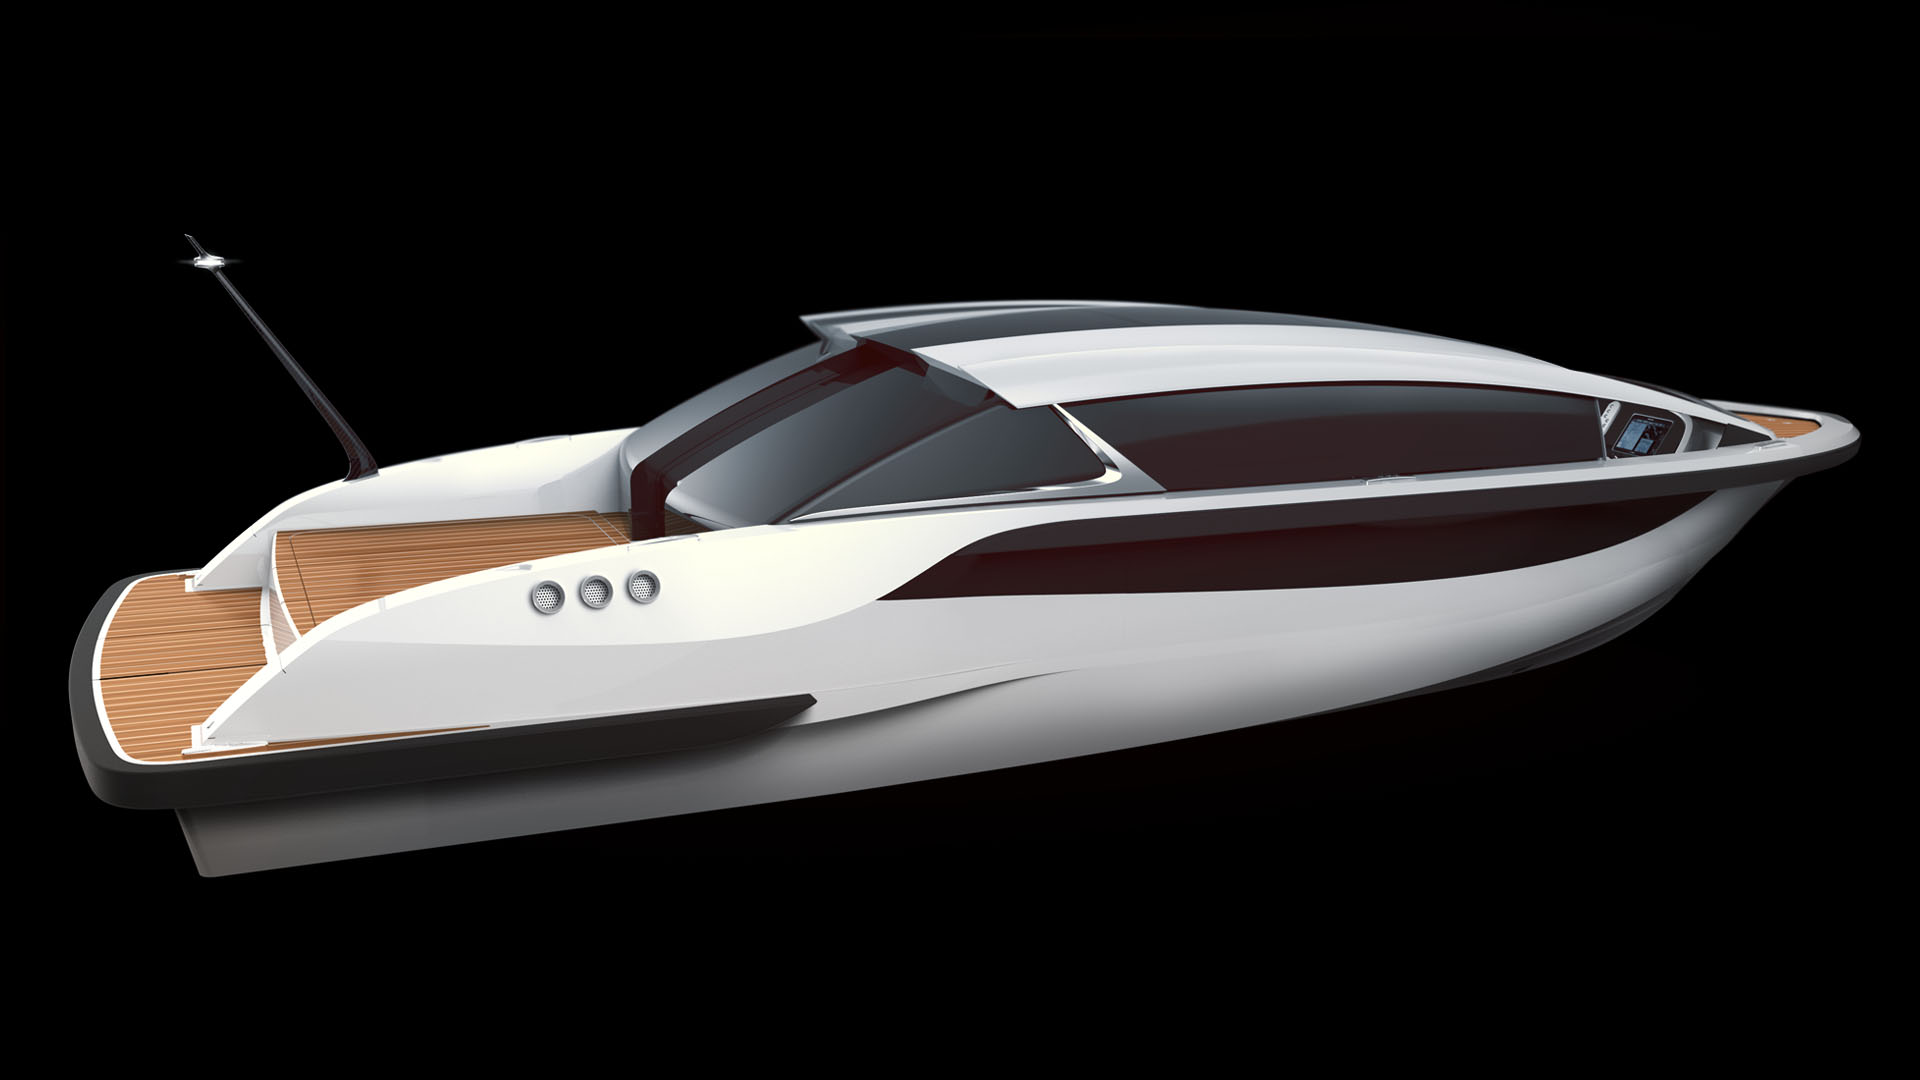 Tender yacht, limousine tender boat, luxurious tenders and toys for superyachts design by Hamid Bekradi